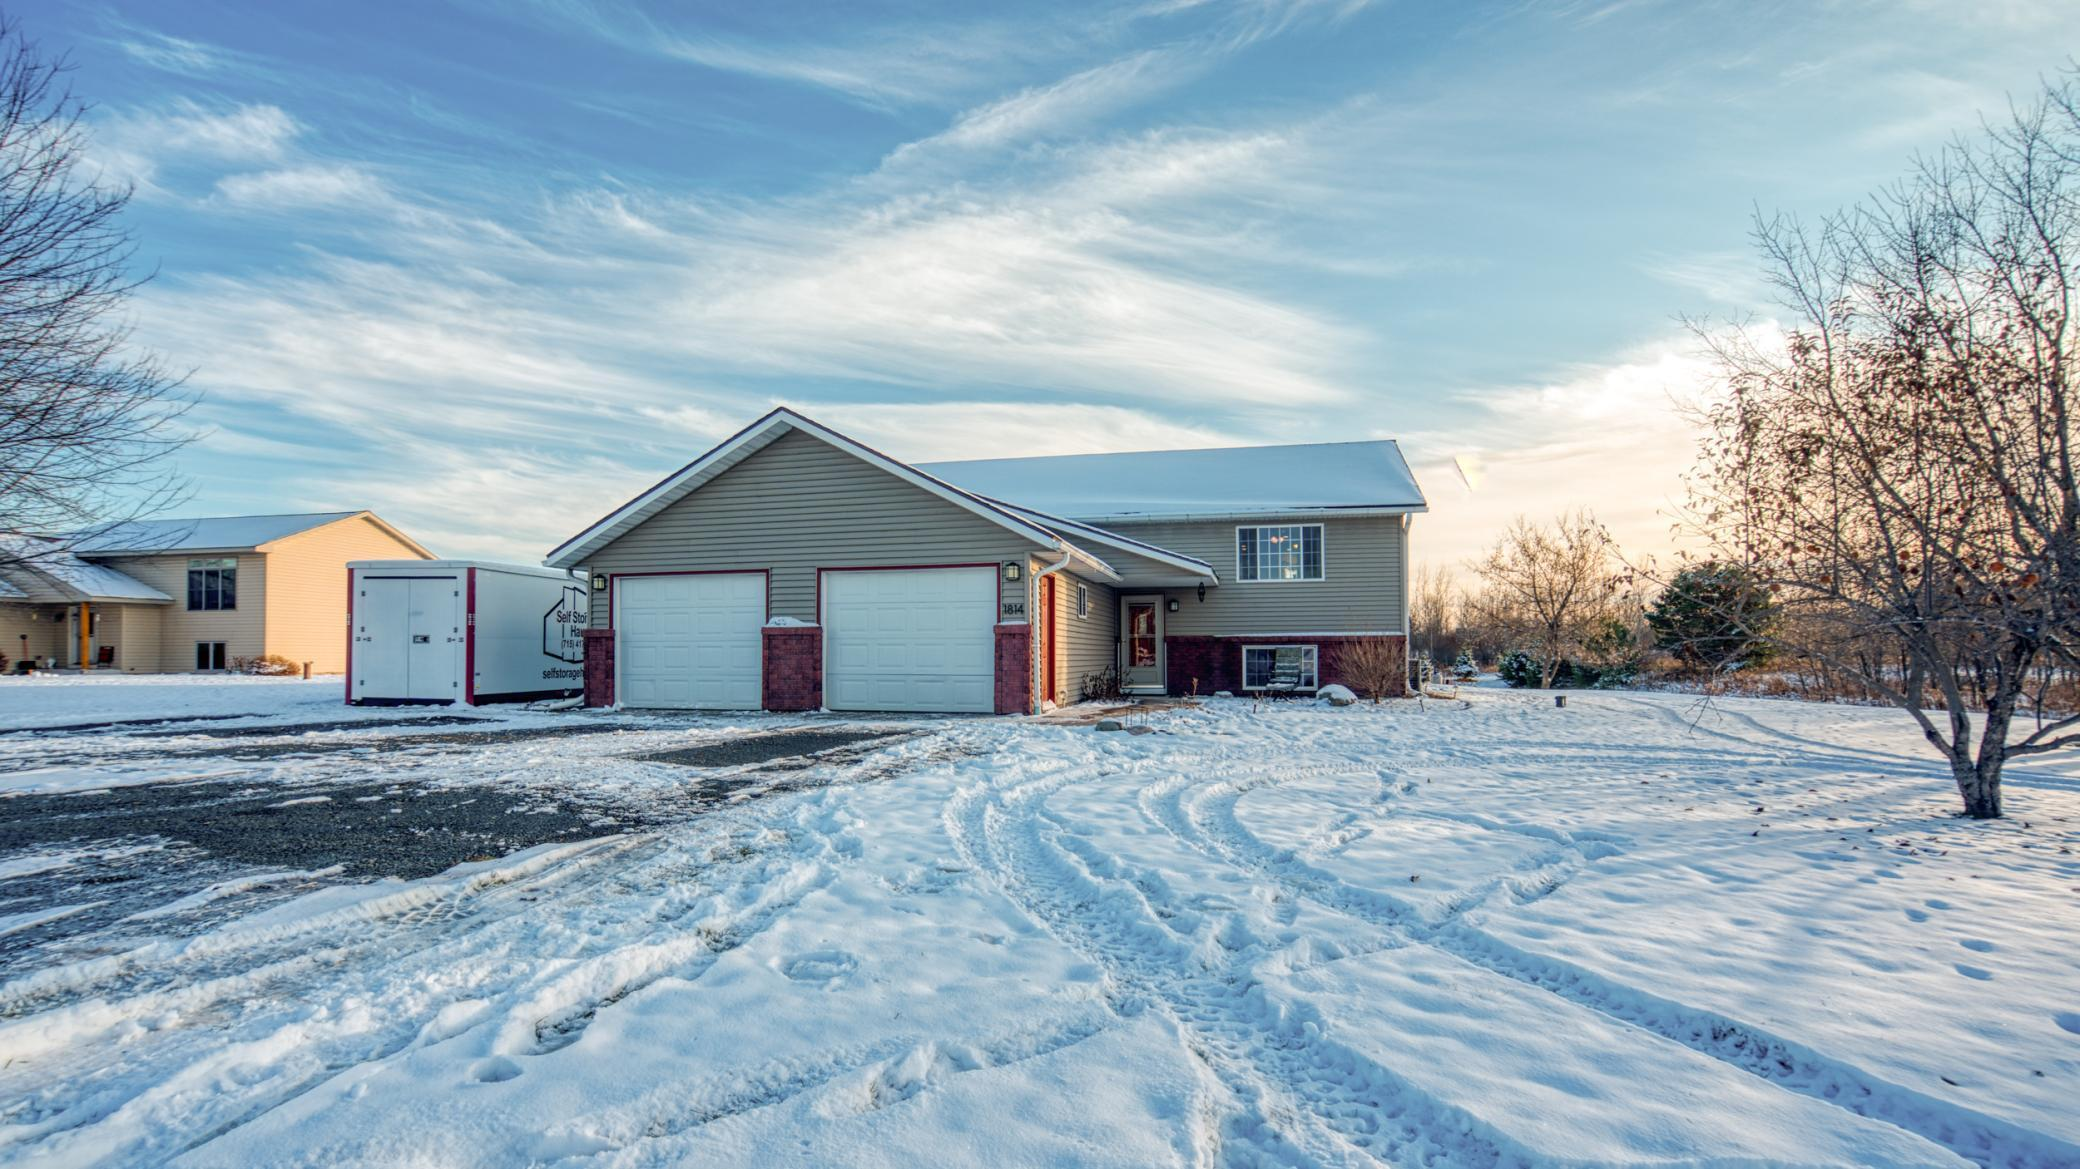 1814 94th Avenue Property Photo - Garfield Twp, WI real estate listing